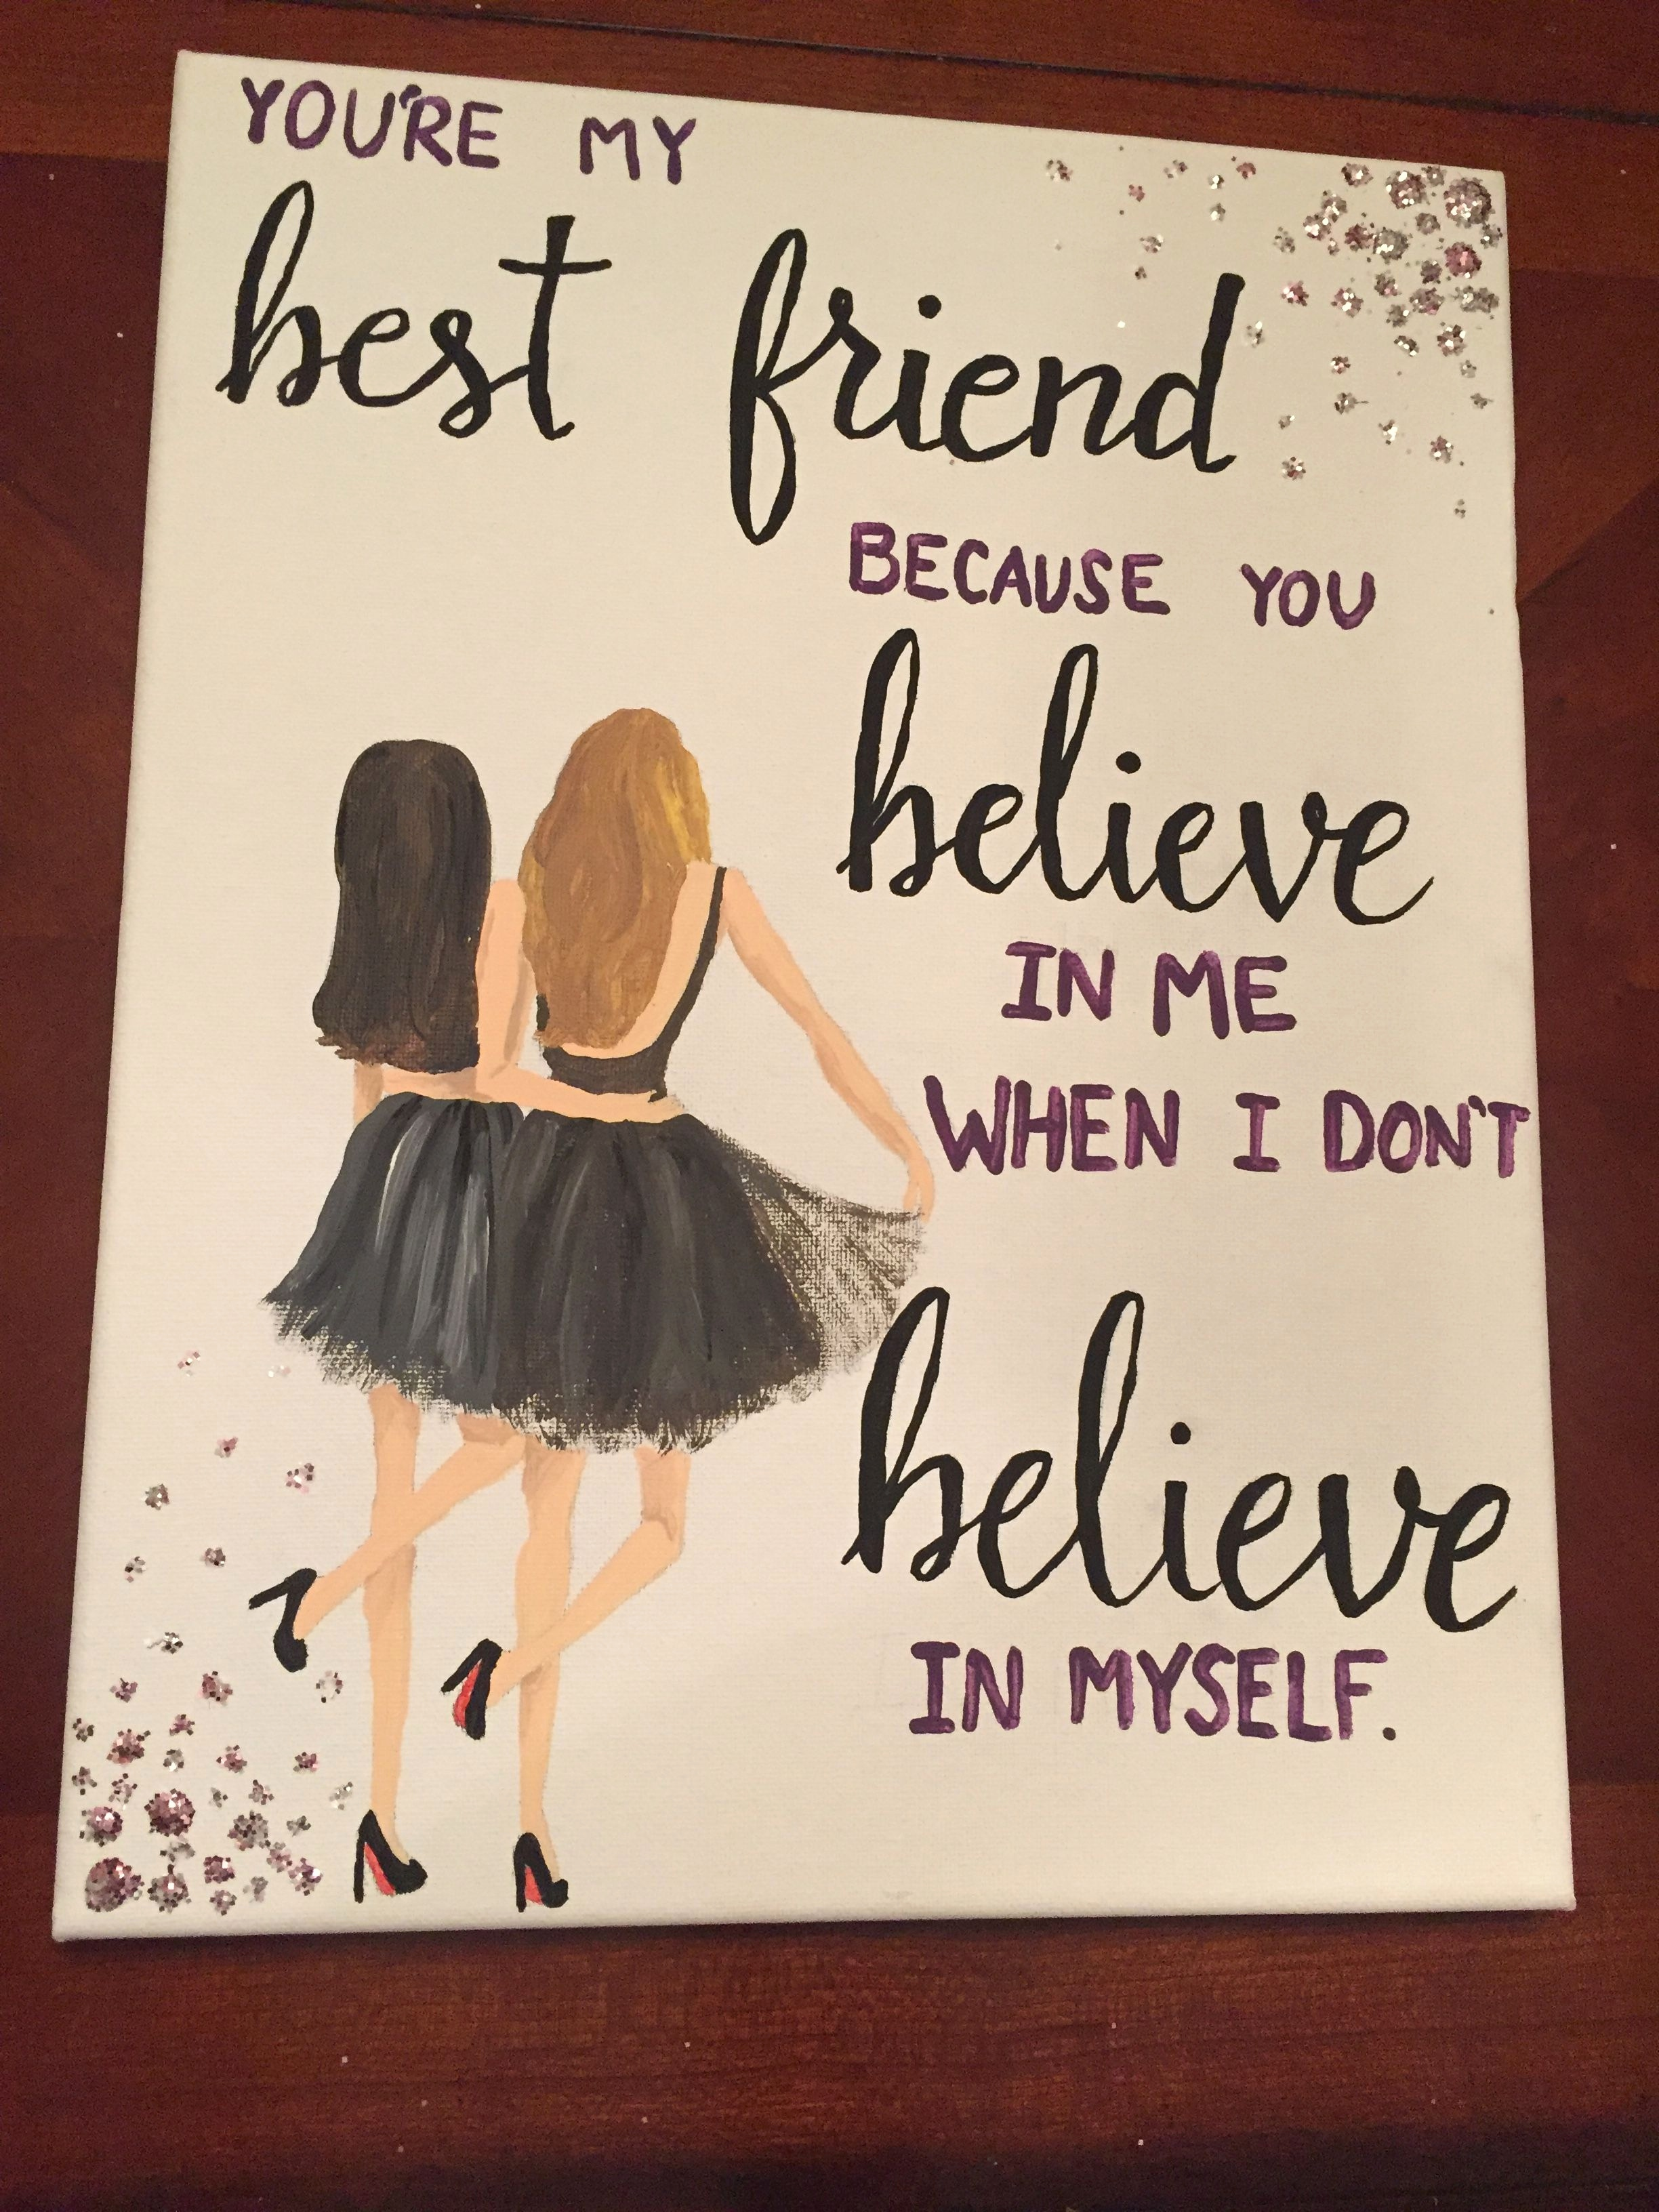 writing a birthday card for your best friend ; what-to-write-in-best-friends-birthday-card-inspirational-canvas-for-best-friend-quote-painting-diy-of-what-to-write-in-best-friends-birthday-card